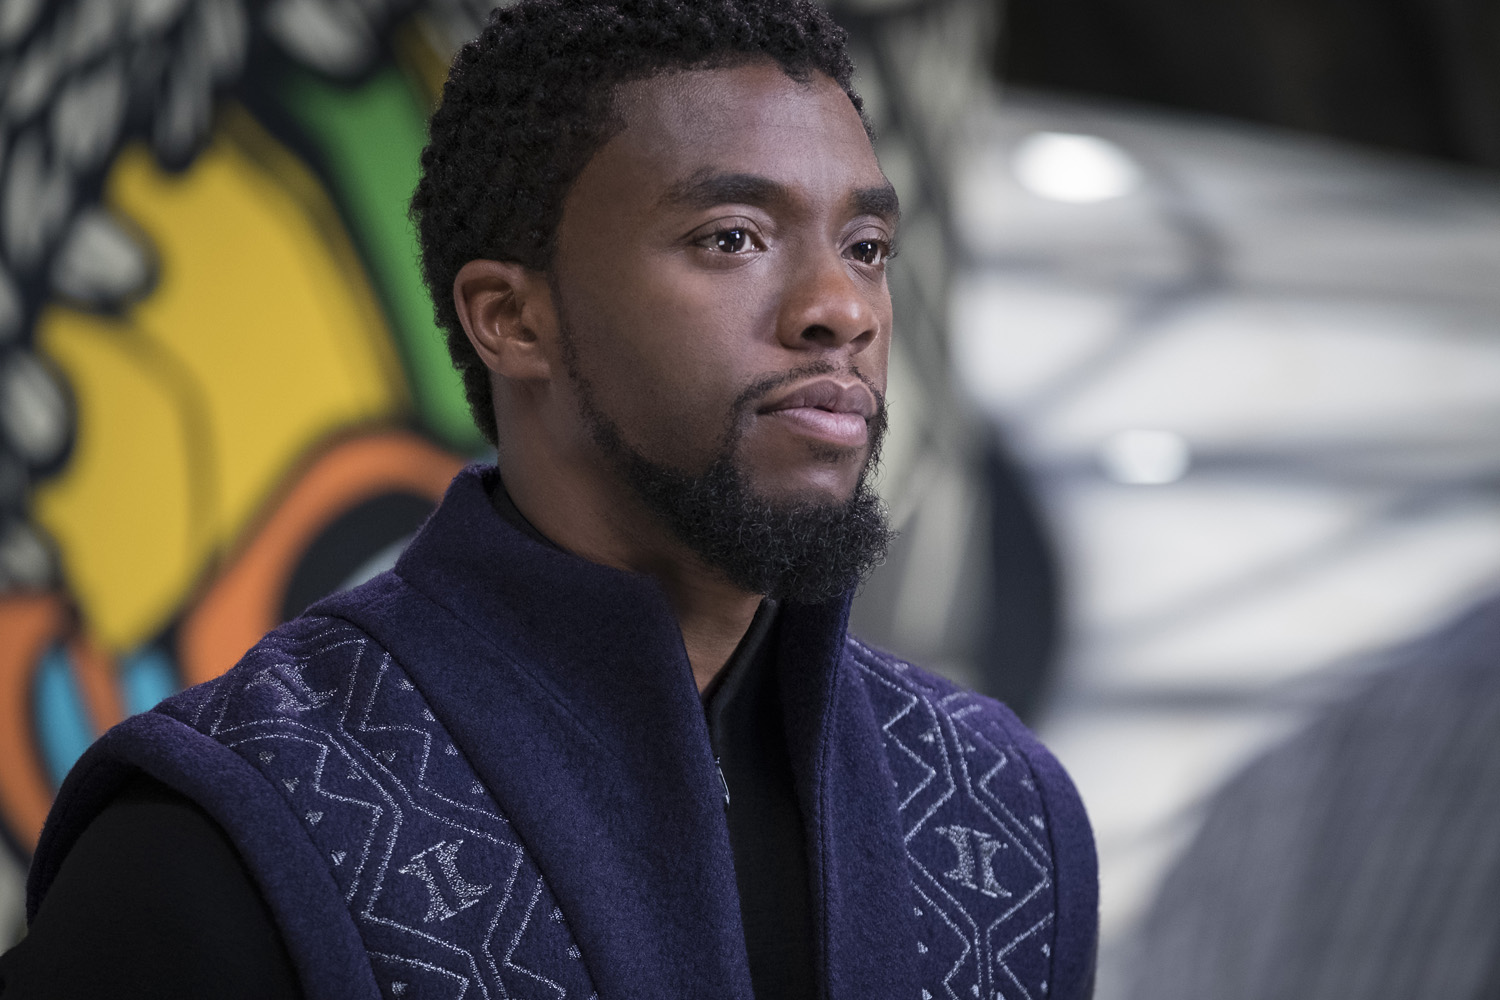 Chadwick Boseman Family Fest video and fans dont like his look